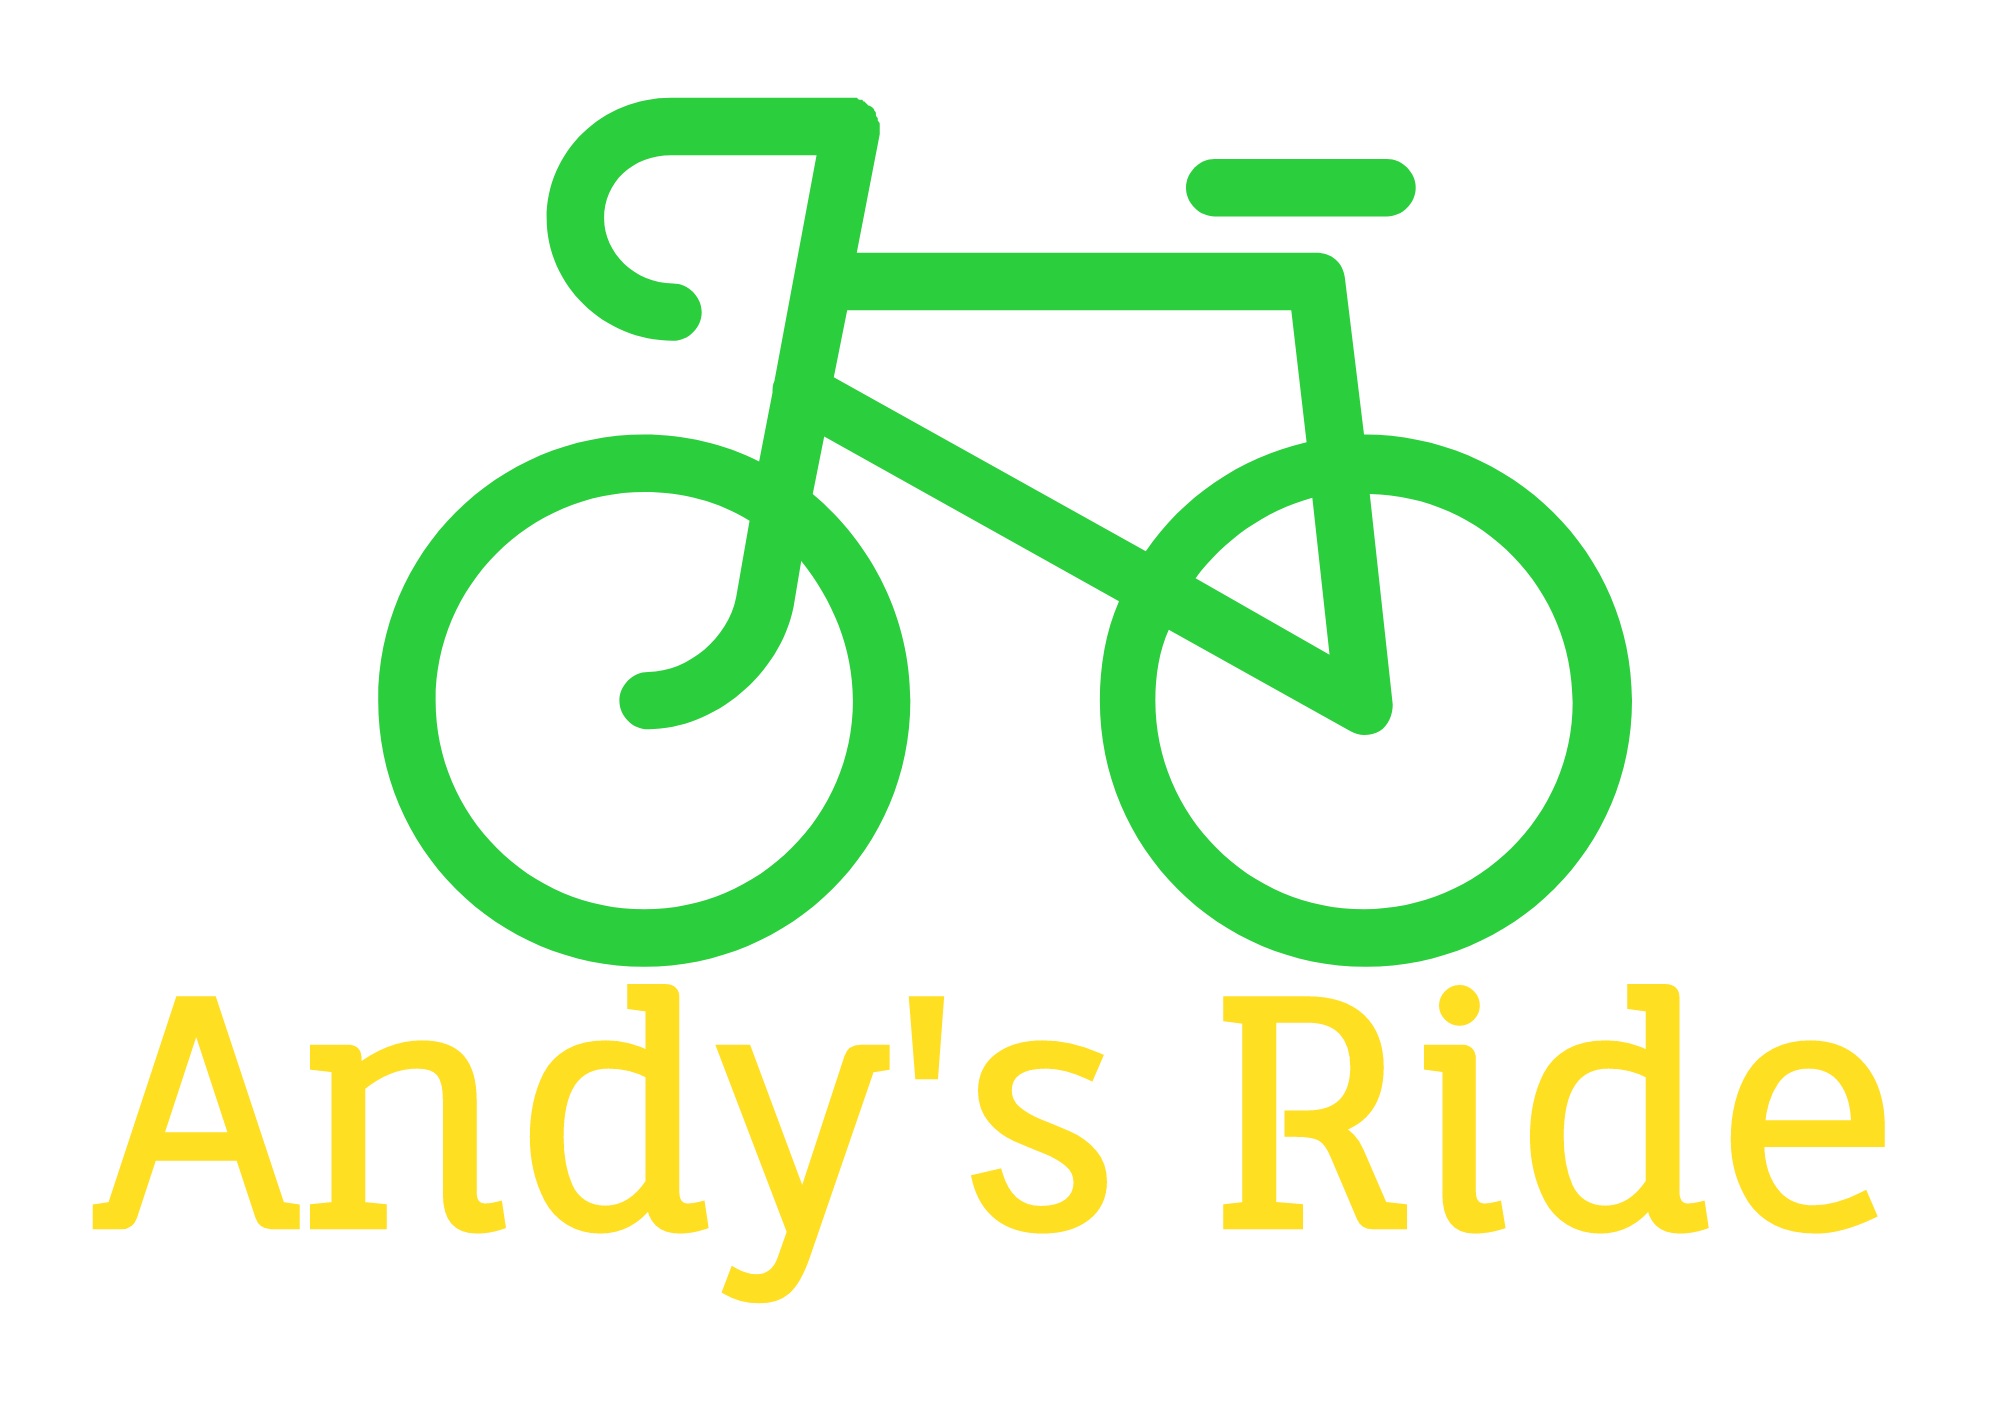 Andy's Ride